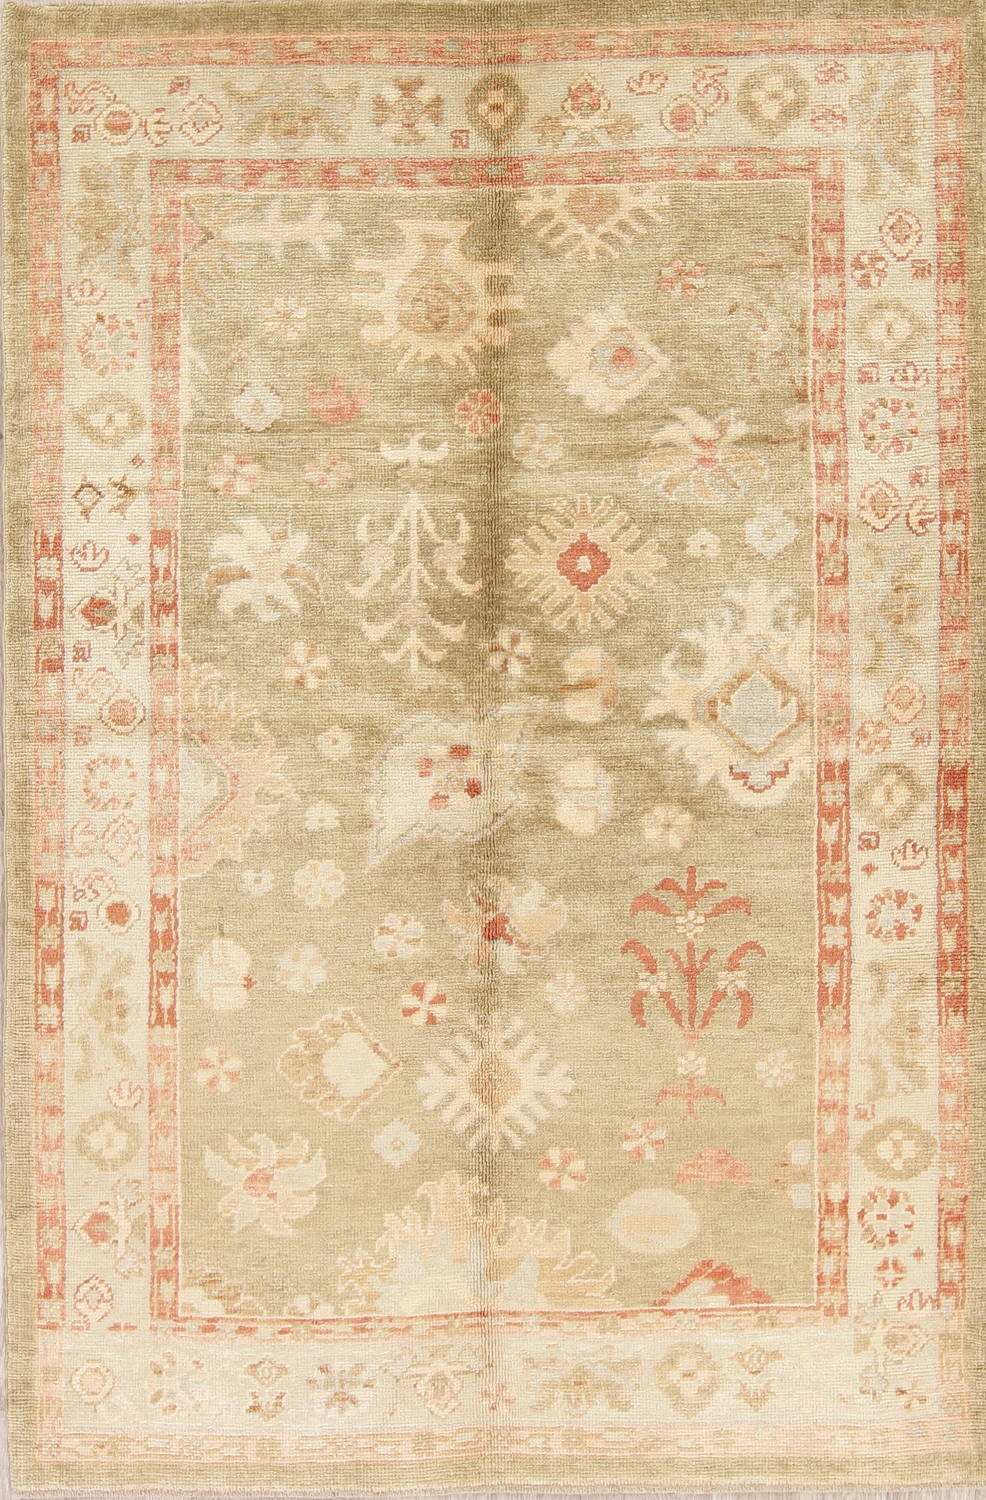 Vegetable Dye Muted Green Oushak Turkish Hand-Knotted Area Rug 5x8 image 1